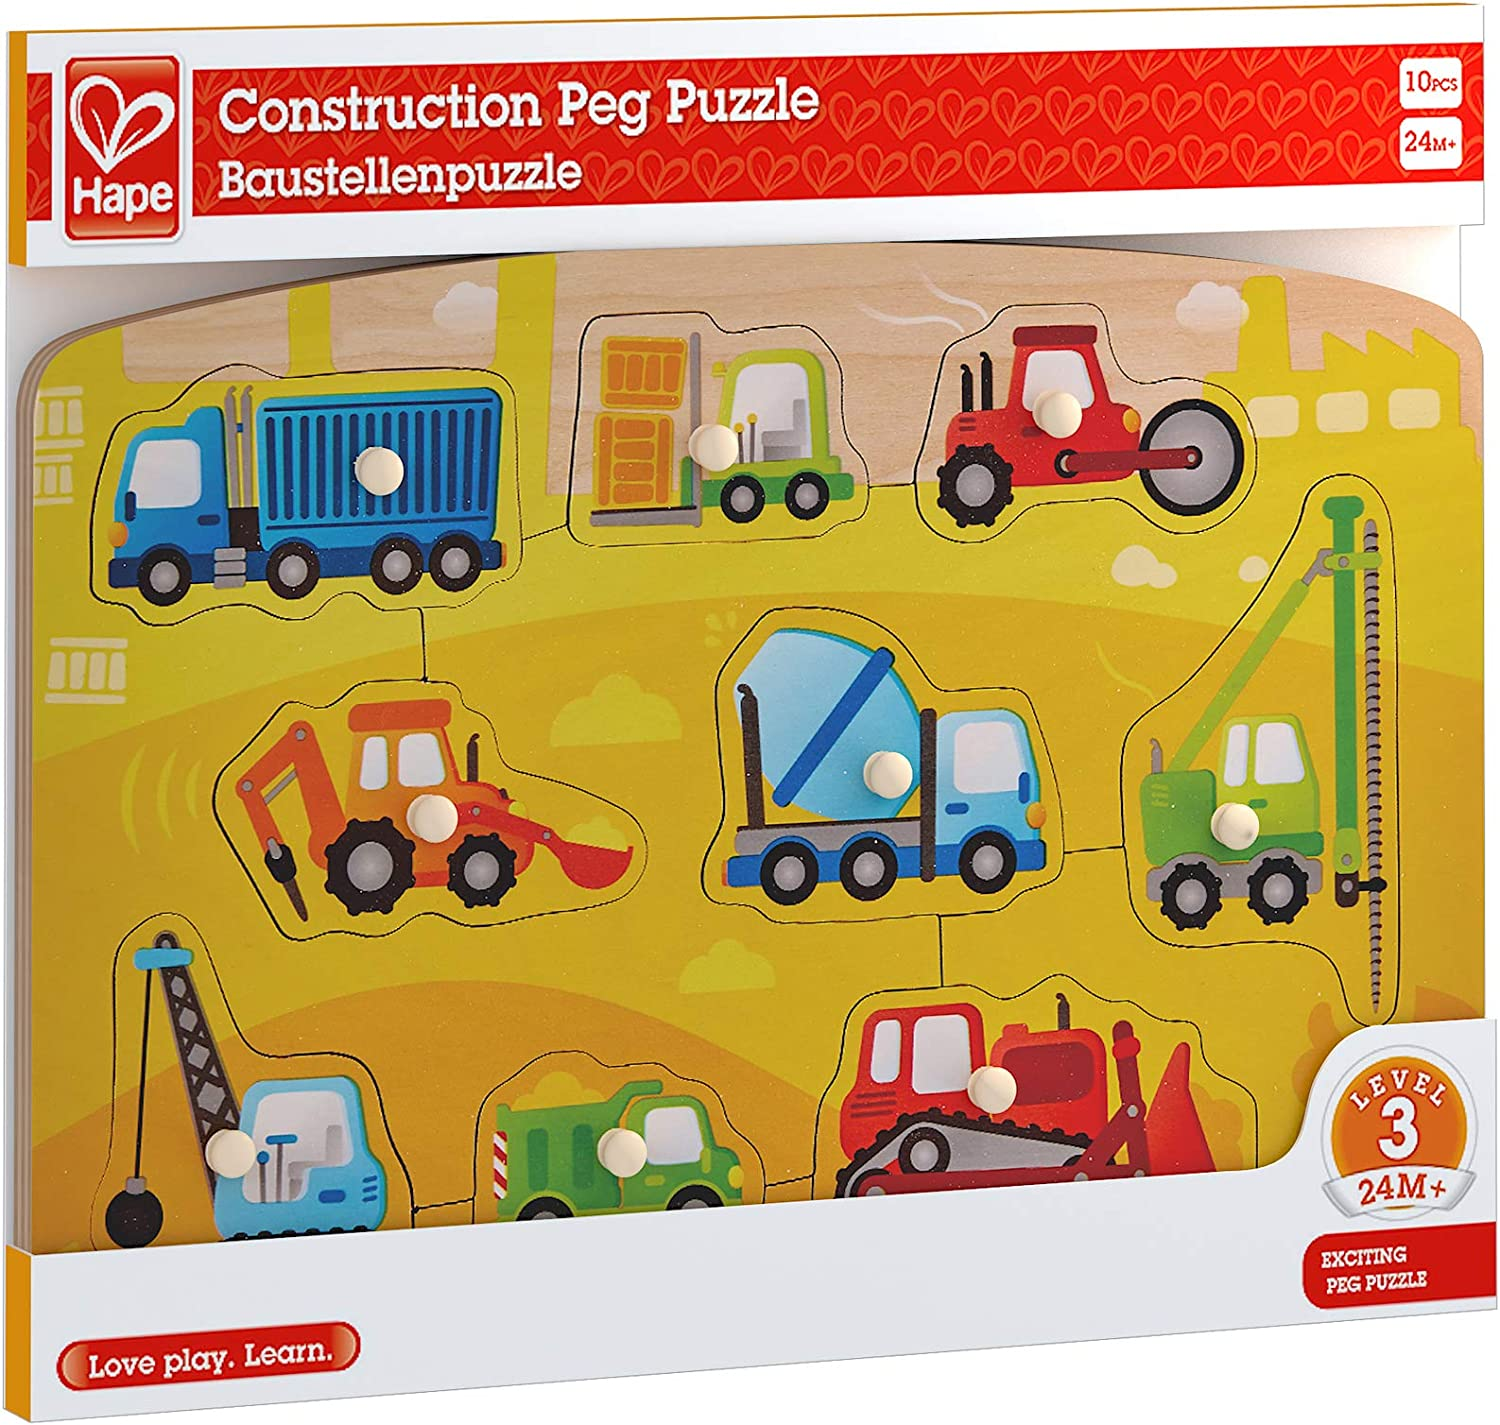 Learning Toy for Toddlers 10 Piece Wooden Peg Jigsaw Puzzle Game Hape Construction Peg Puzzle